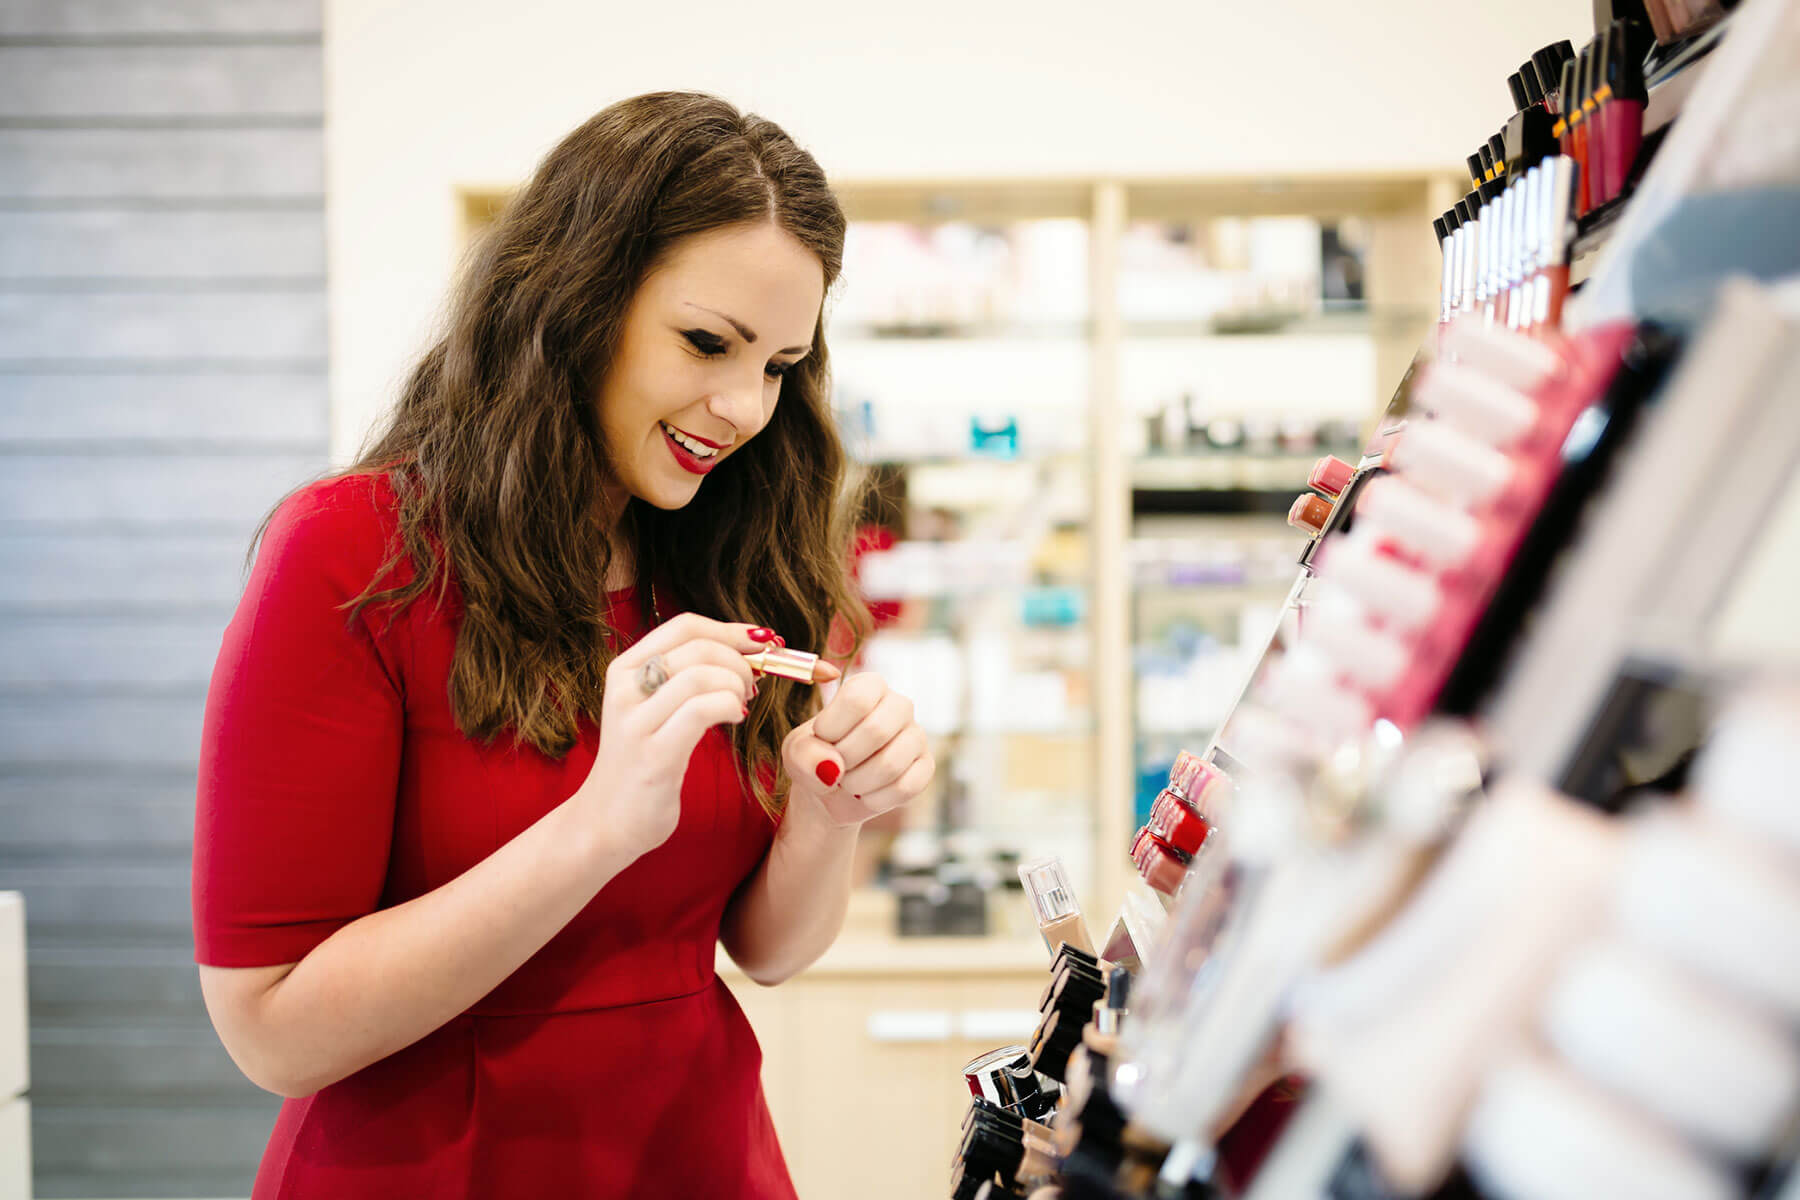 4 Key Ways Beauty Brands Can Bounce Back From COVID